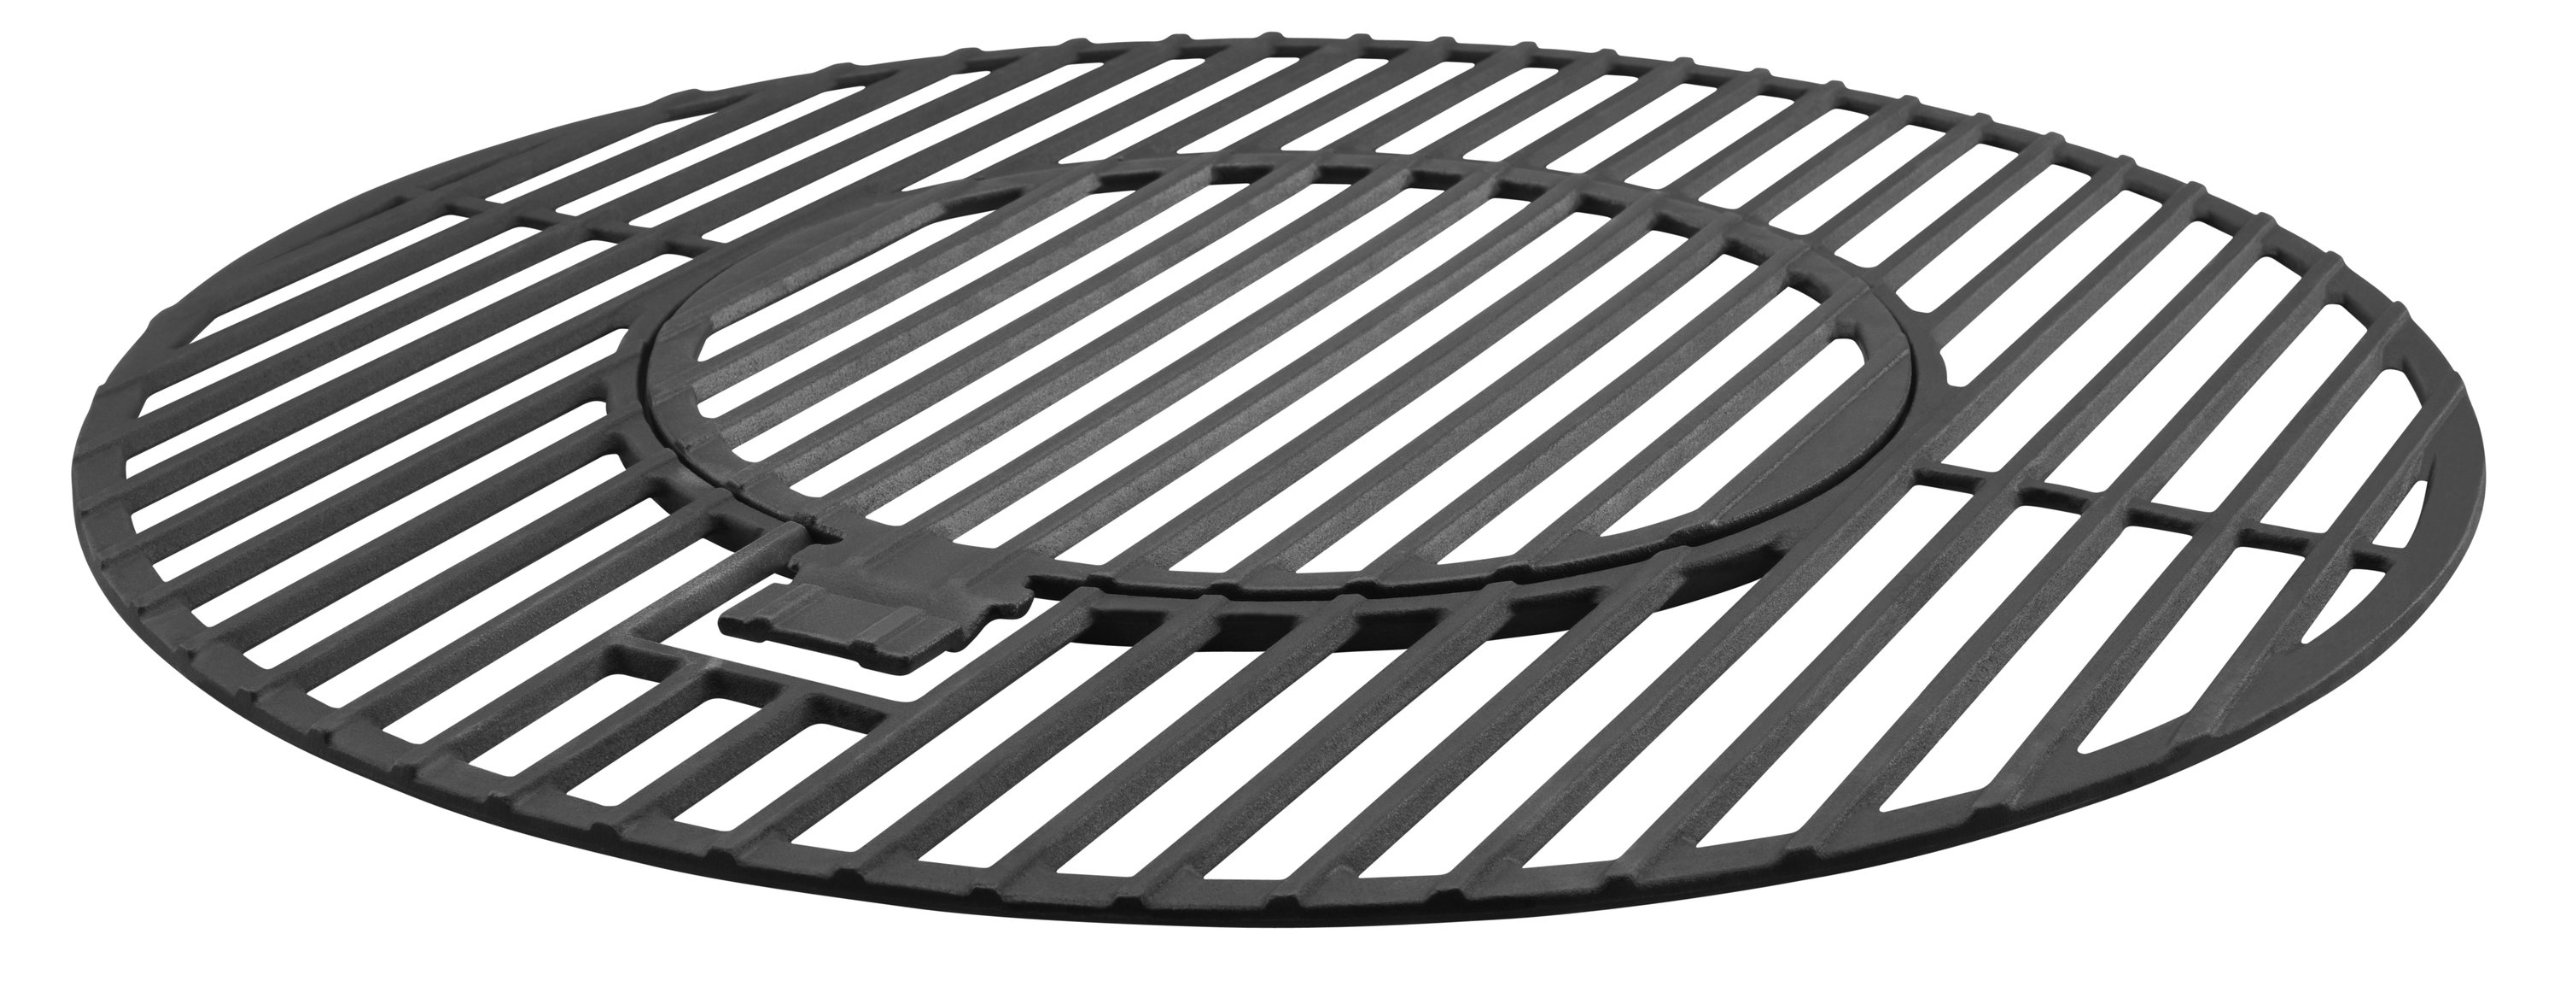 Stok SIS9000 Grill Replacement 22-1/2-Inch Grate